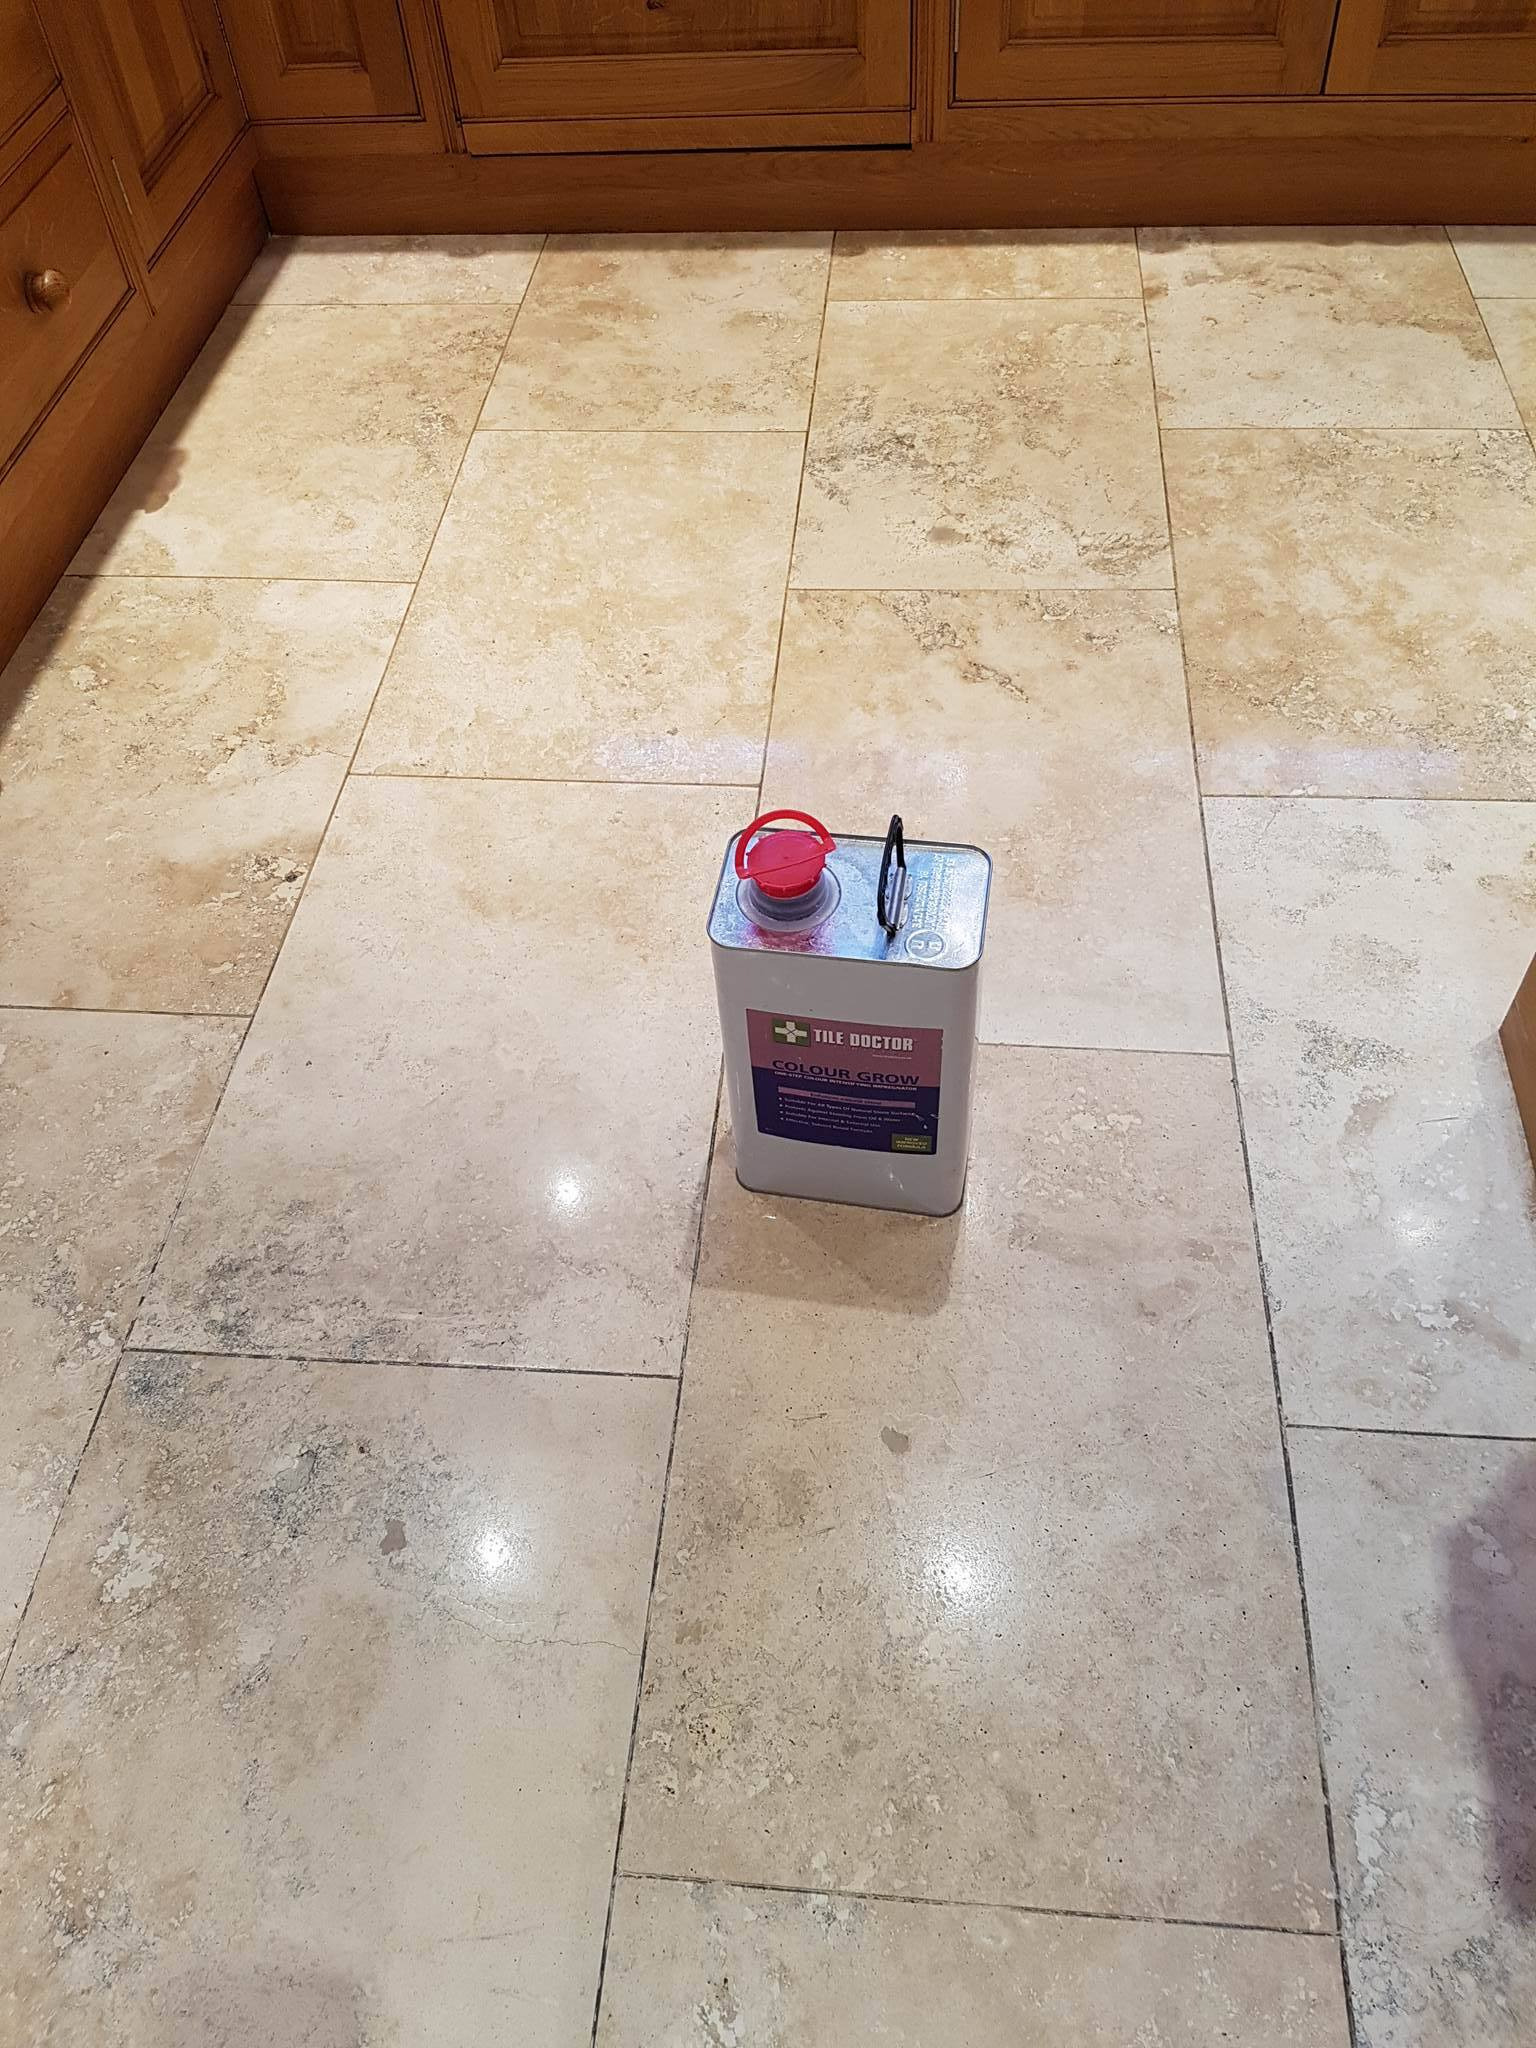 Travertine Tiled Floor During Sealing Bury